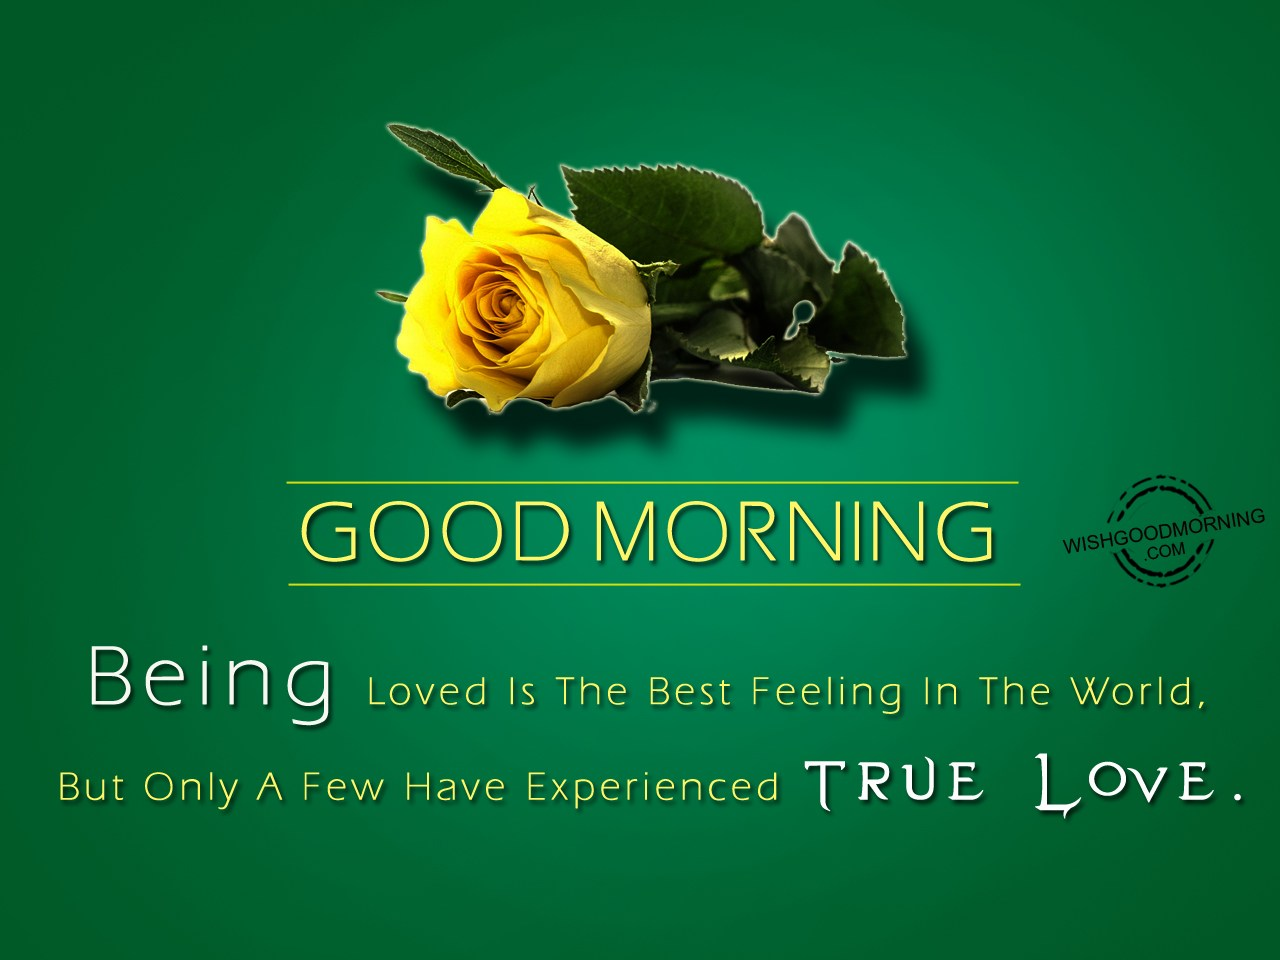 Good Morning Quotes Wife : Good morning wishes messages with beautiful images for